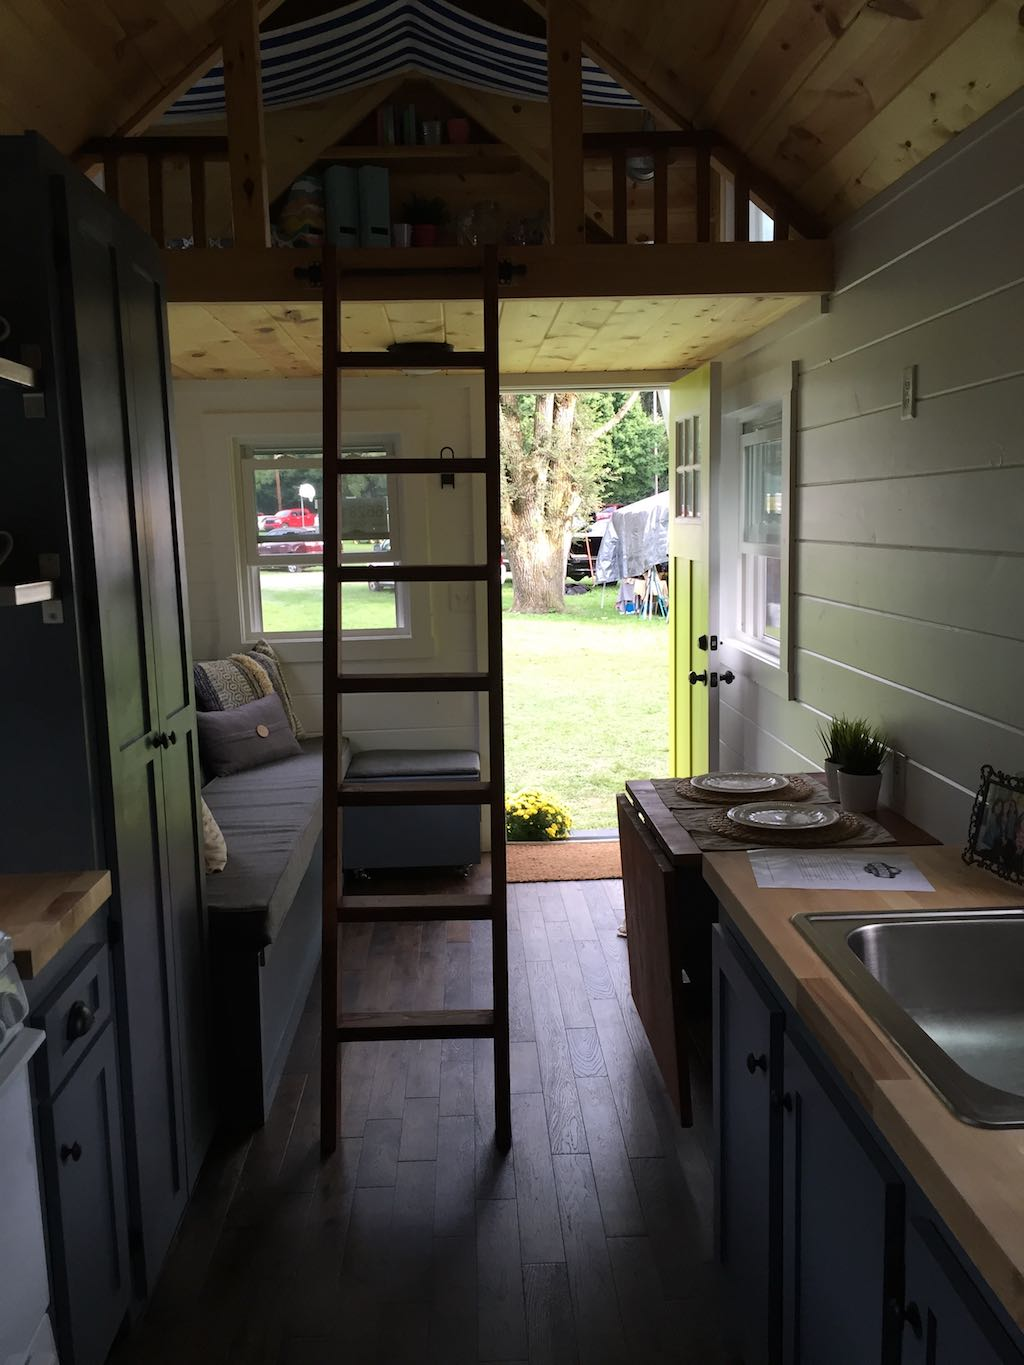 wanigan-burrow-tiny-homes-9